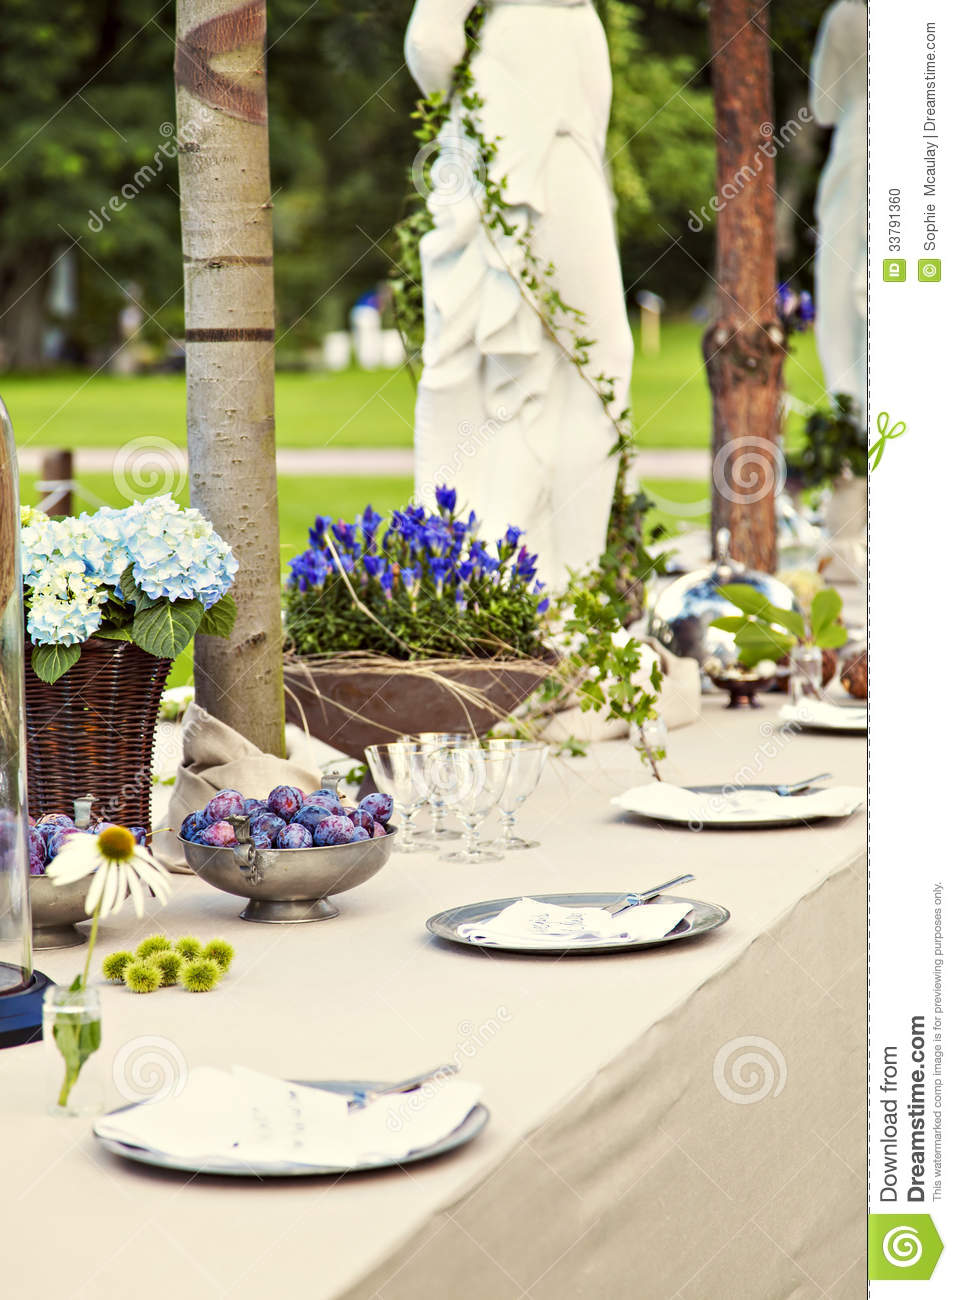 Garden Wedding Table Setting Stock Photo Image 33791360